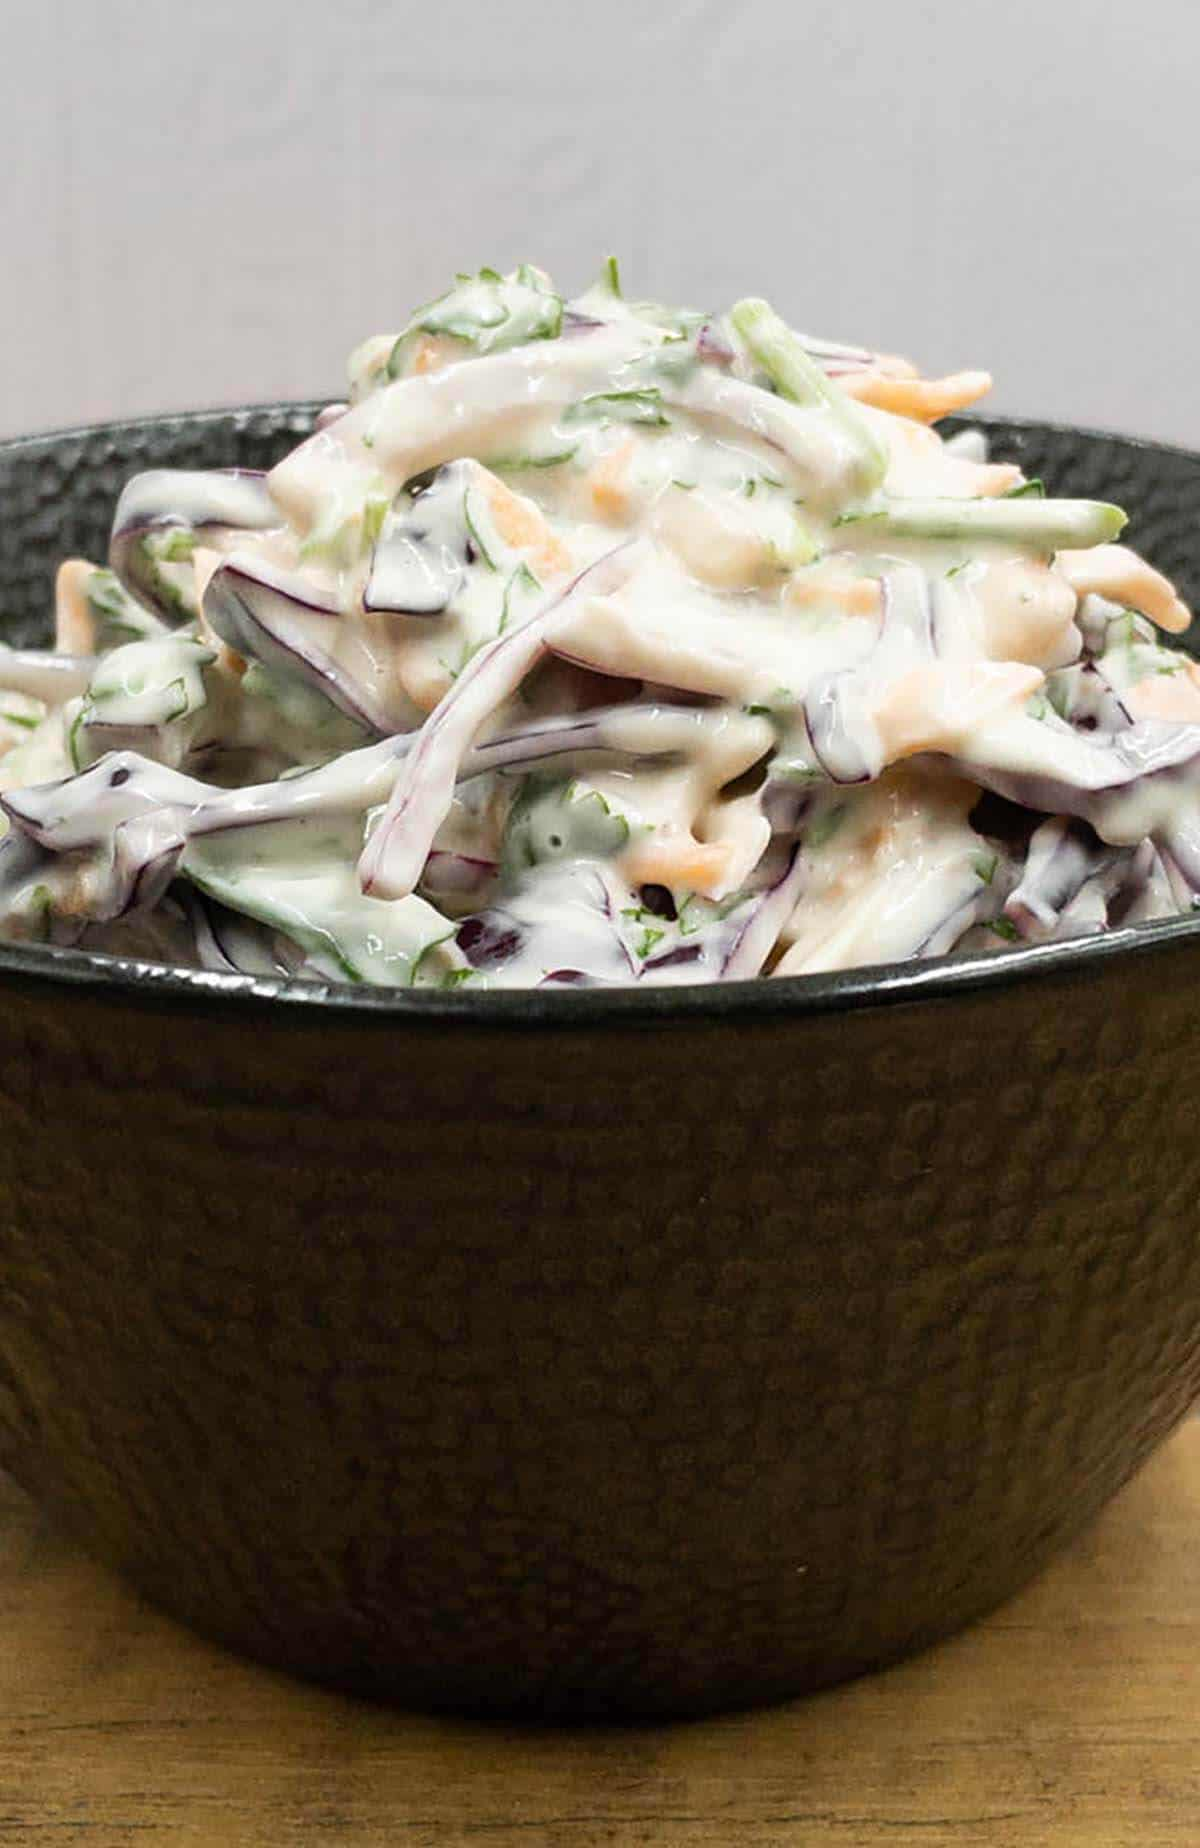 Bowl of homemade red cabbage slaw